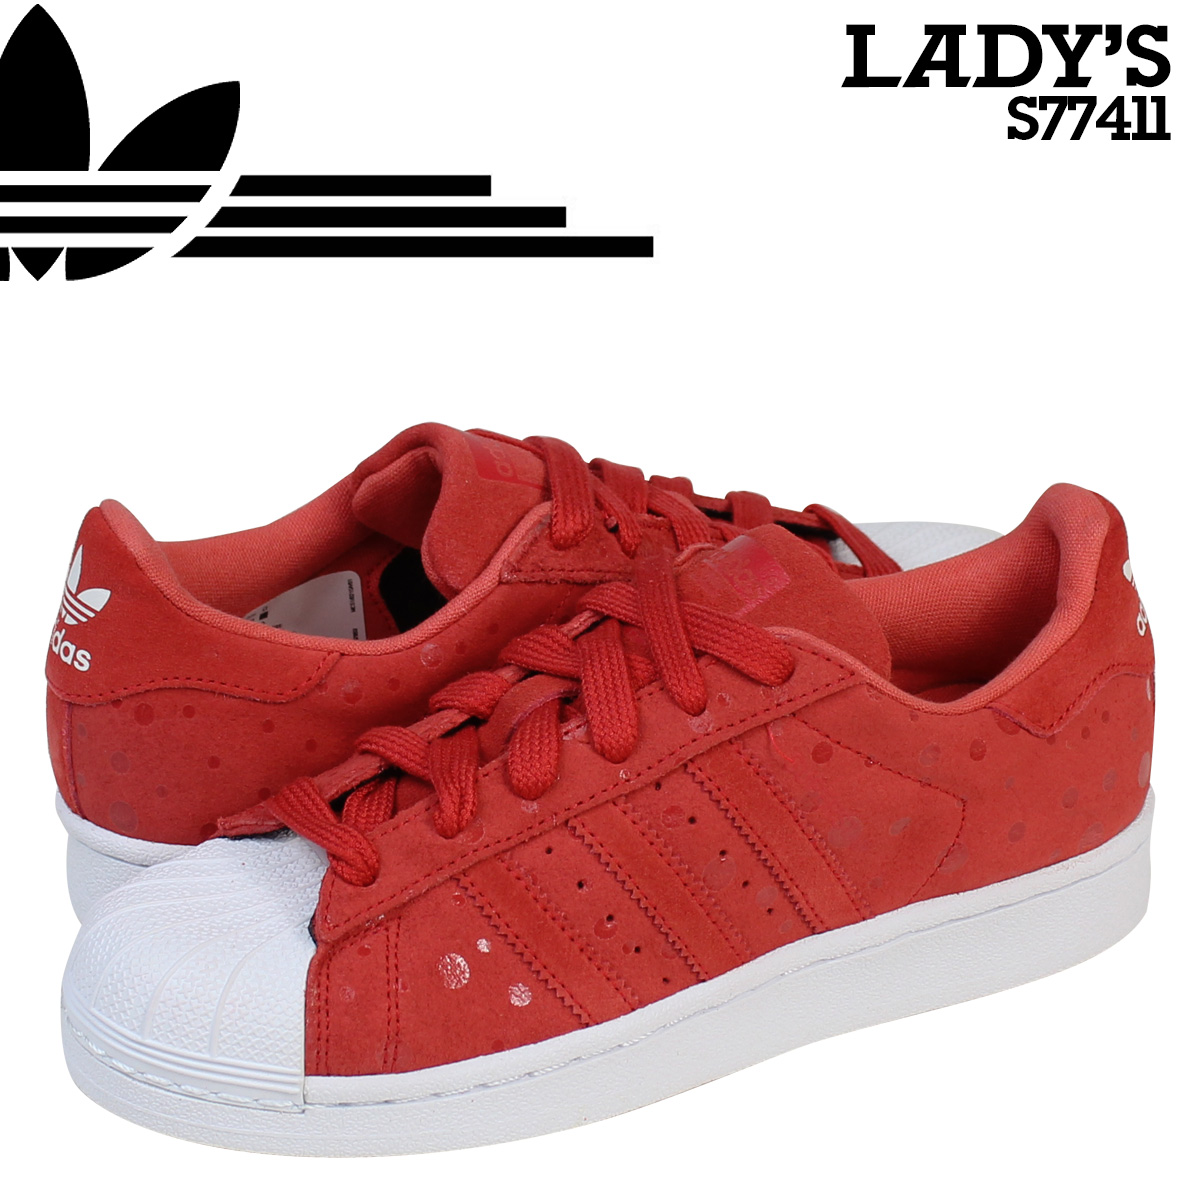 825fb766f283 Adidas originals adidas Originals Womens SUPERSTAR W sneakers Super Star  woman S77411 tomatoes  9 4 new in stock